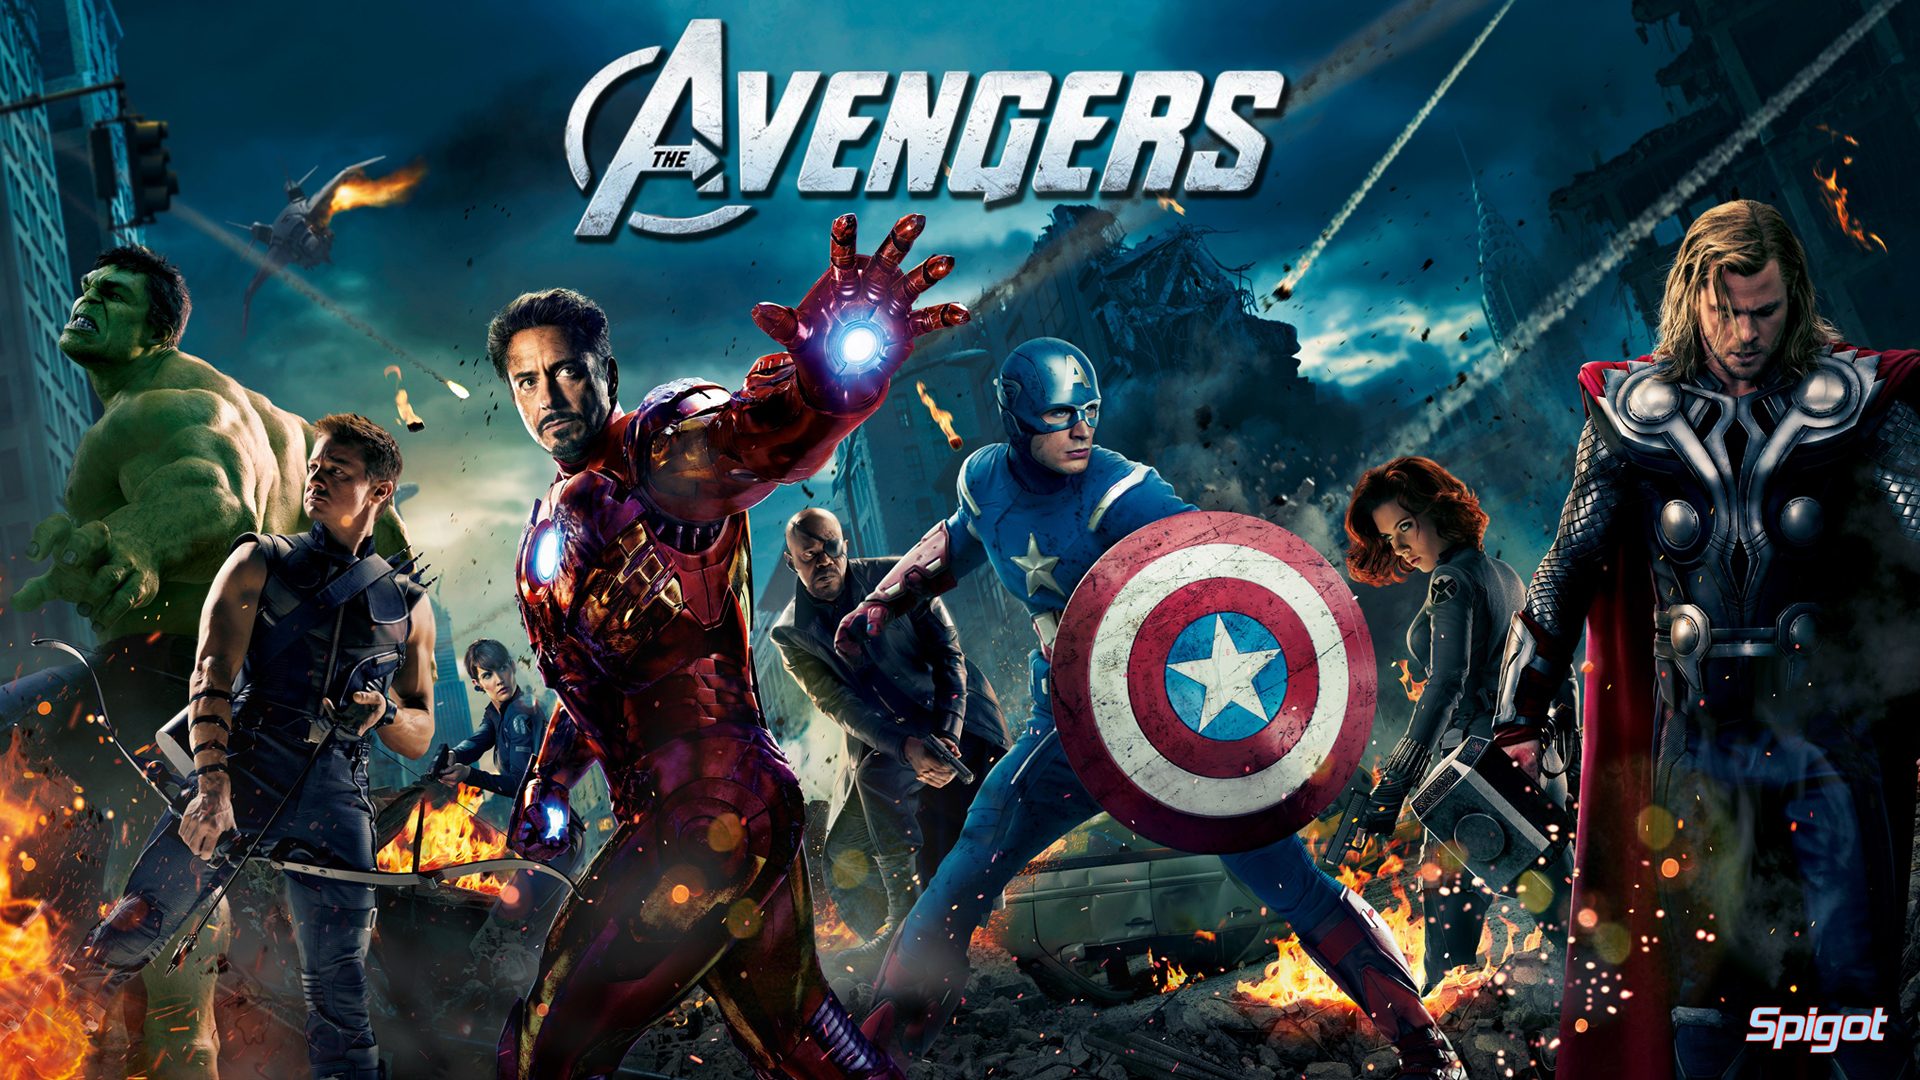 The Avengers Wallpaper Desktop 1920x1080